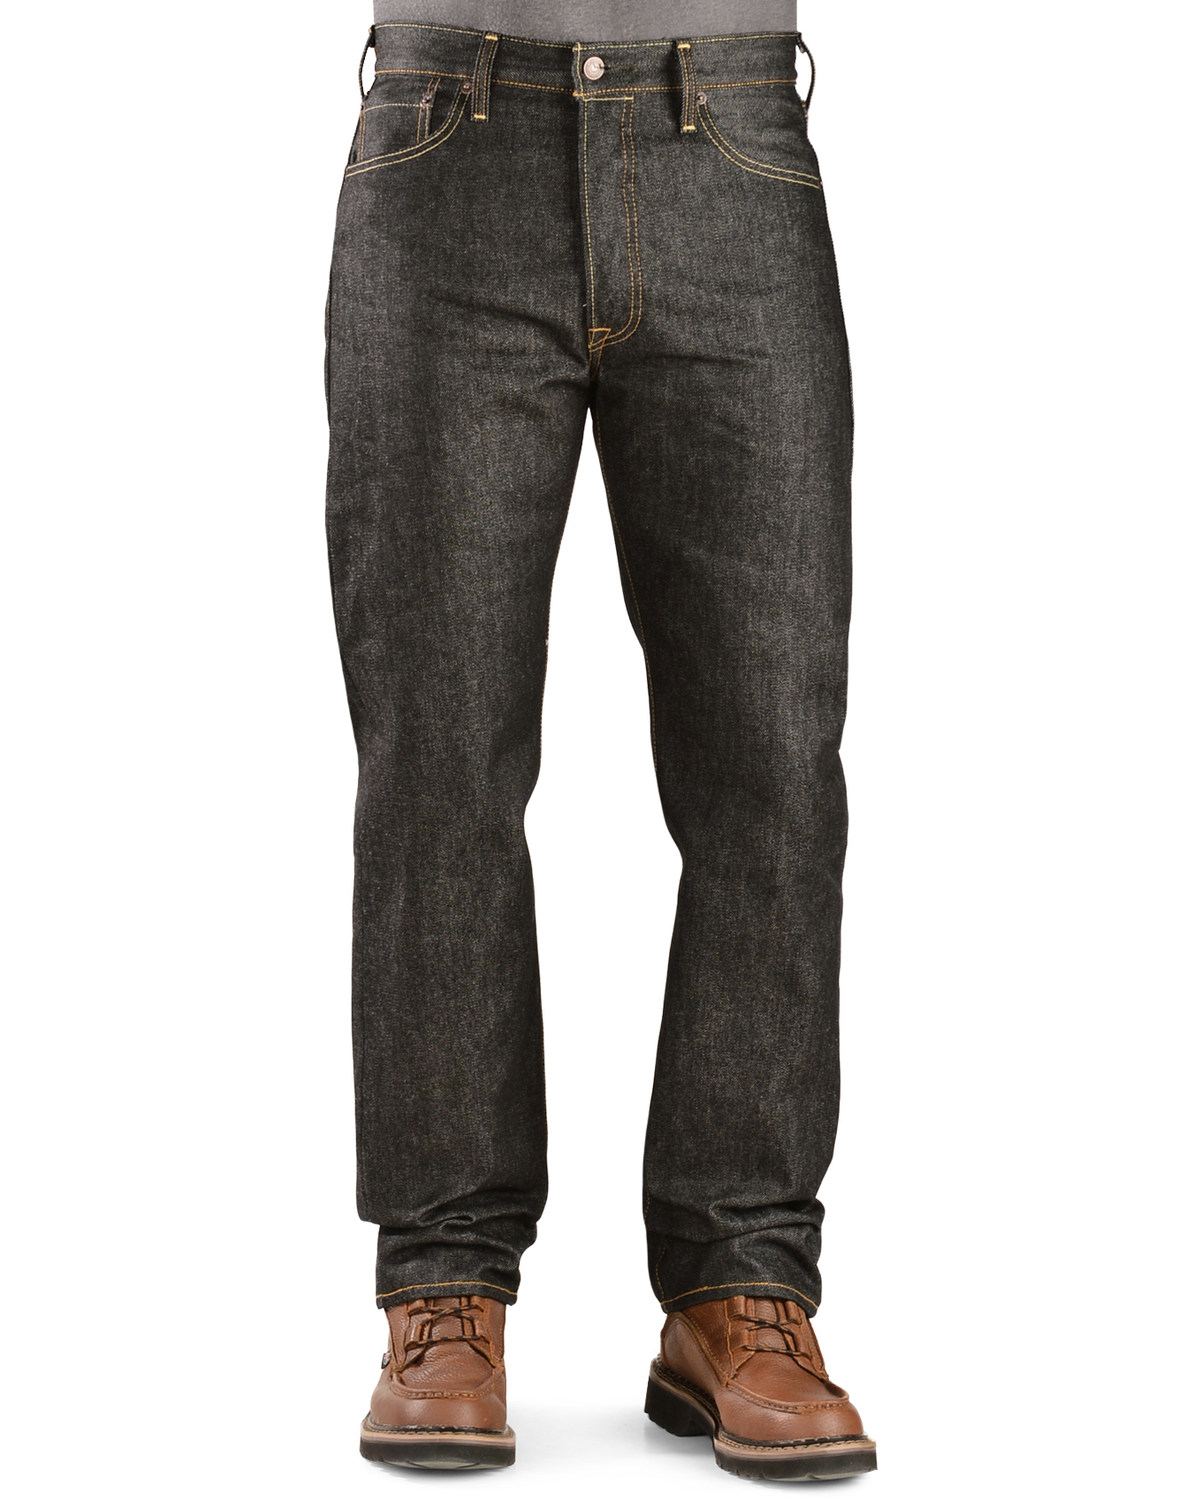 Leviu0026#39;s 501 Jeans - Original Shrink-to-Fit | Boot Barn